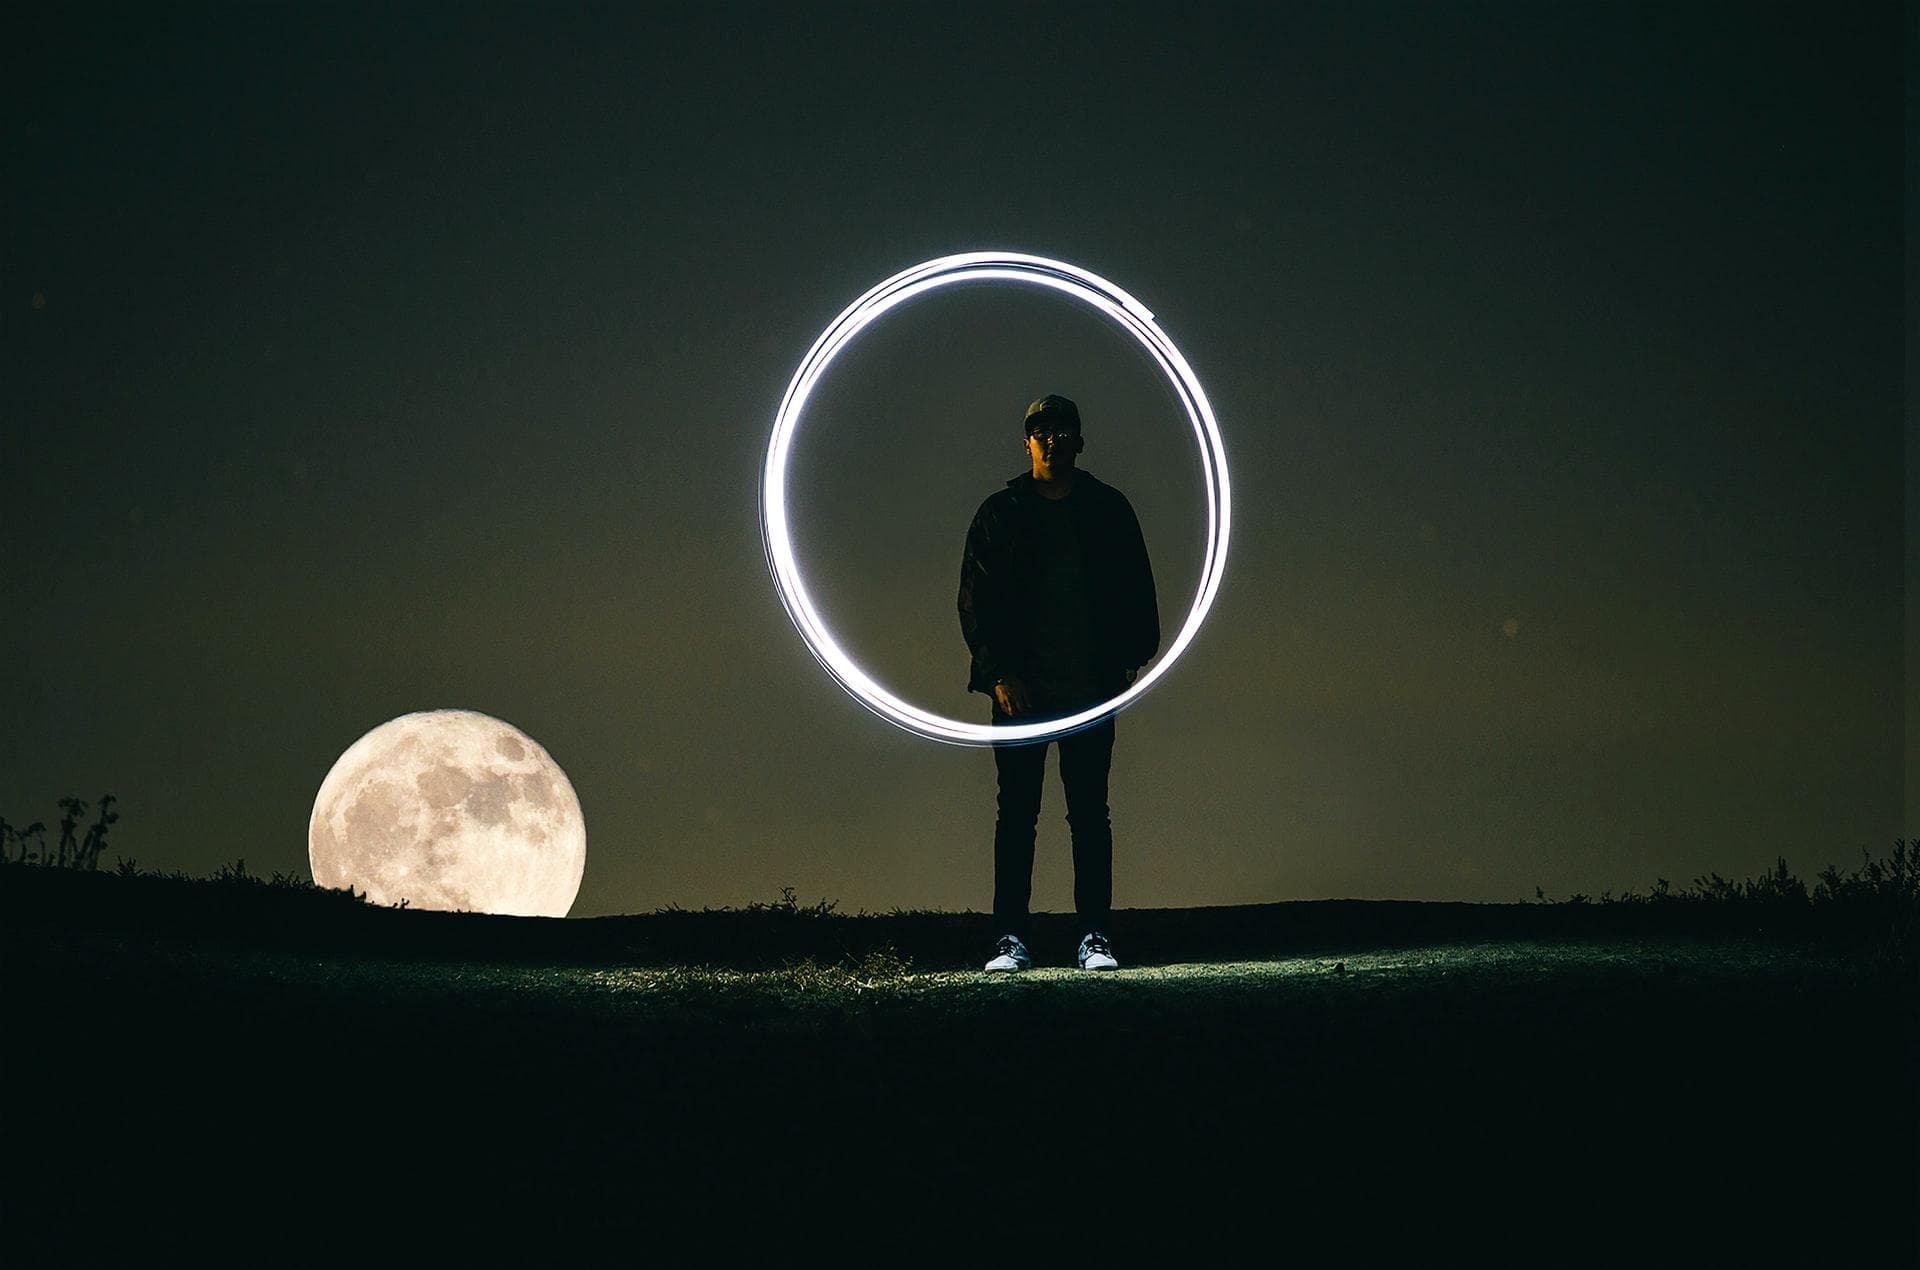 Man in the dark, painting a circle with light and long camera exposure